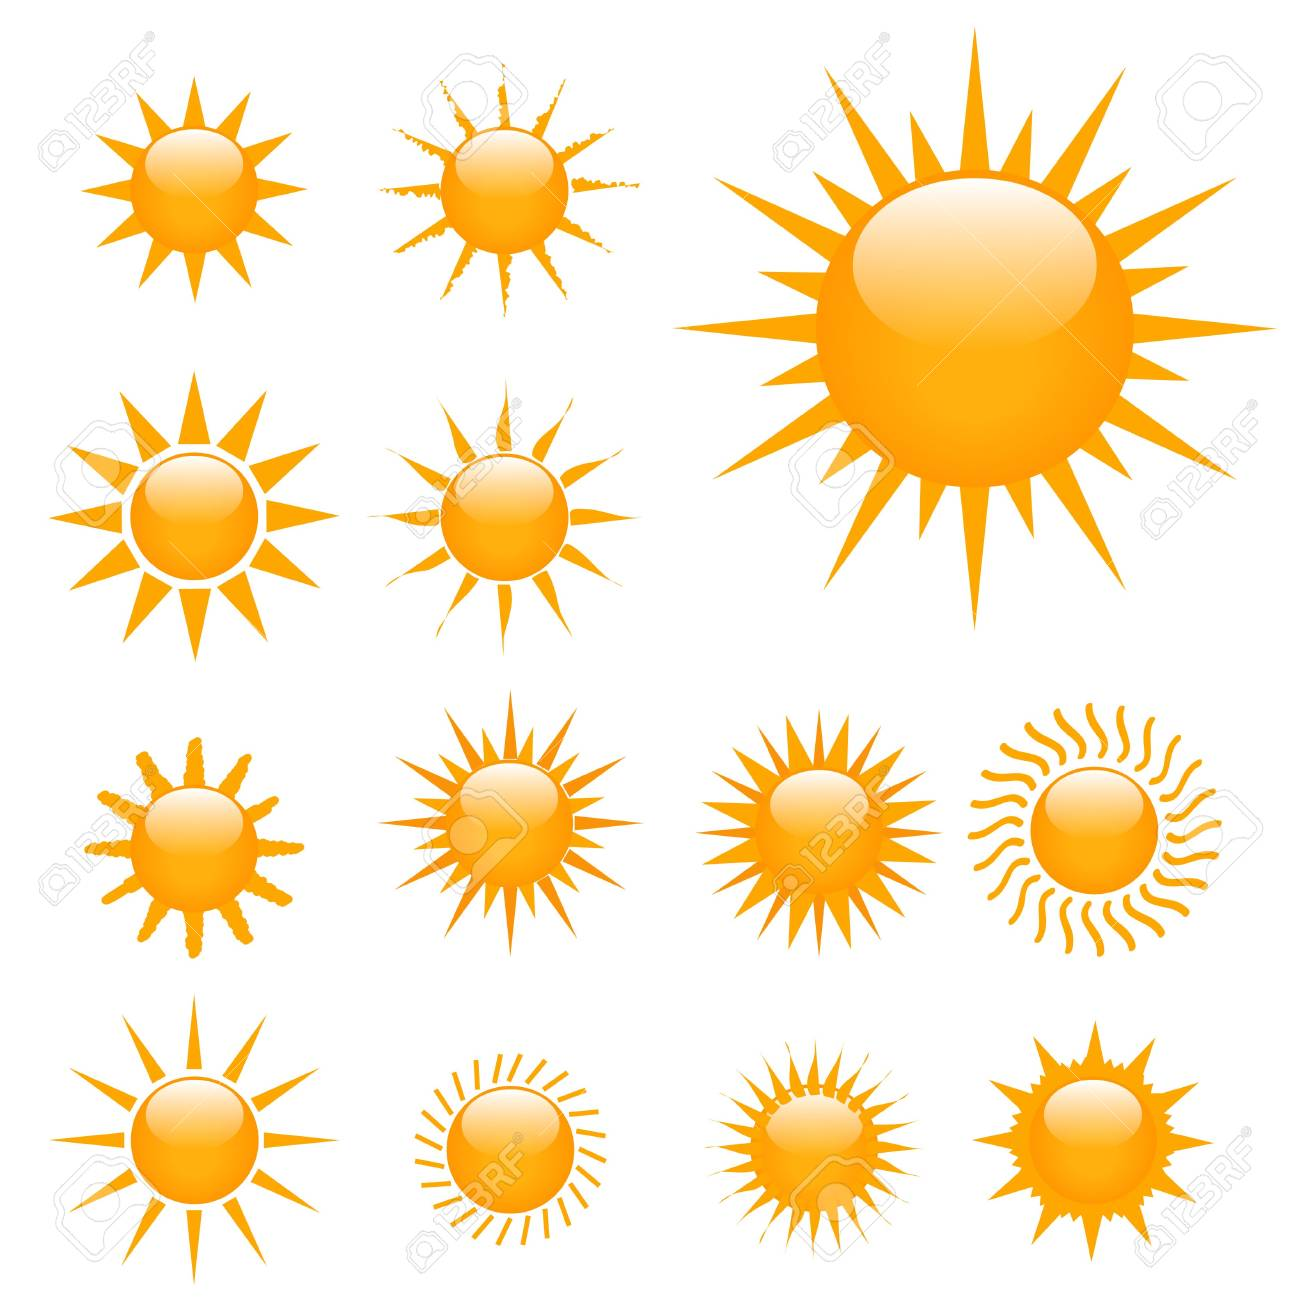 Illustration of multiple suns on a white background Stock Illustration - 7141615